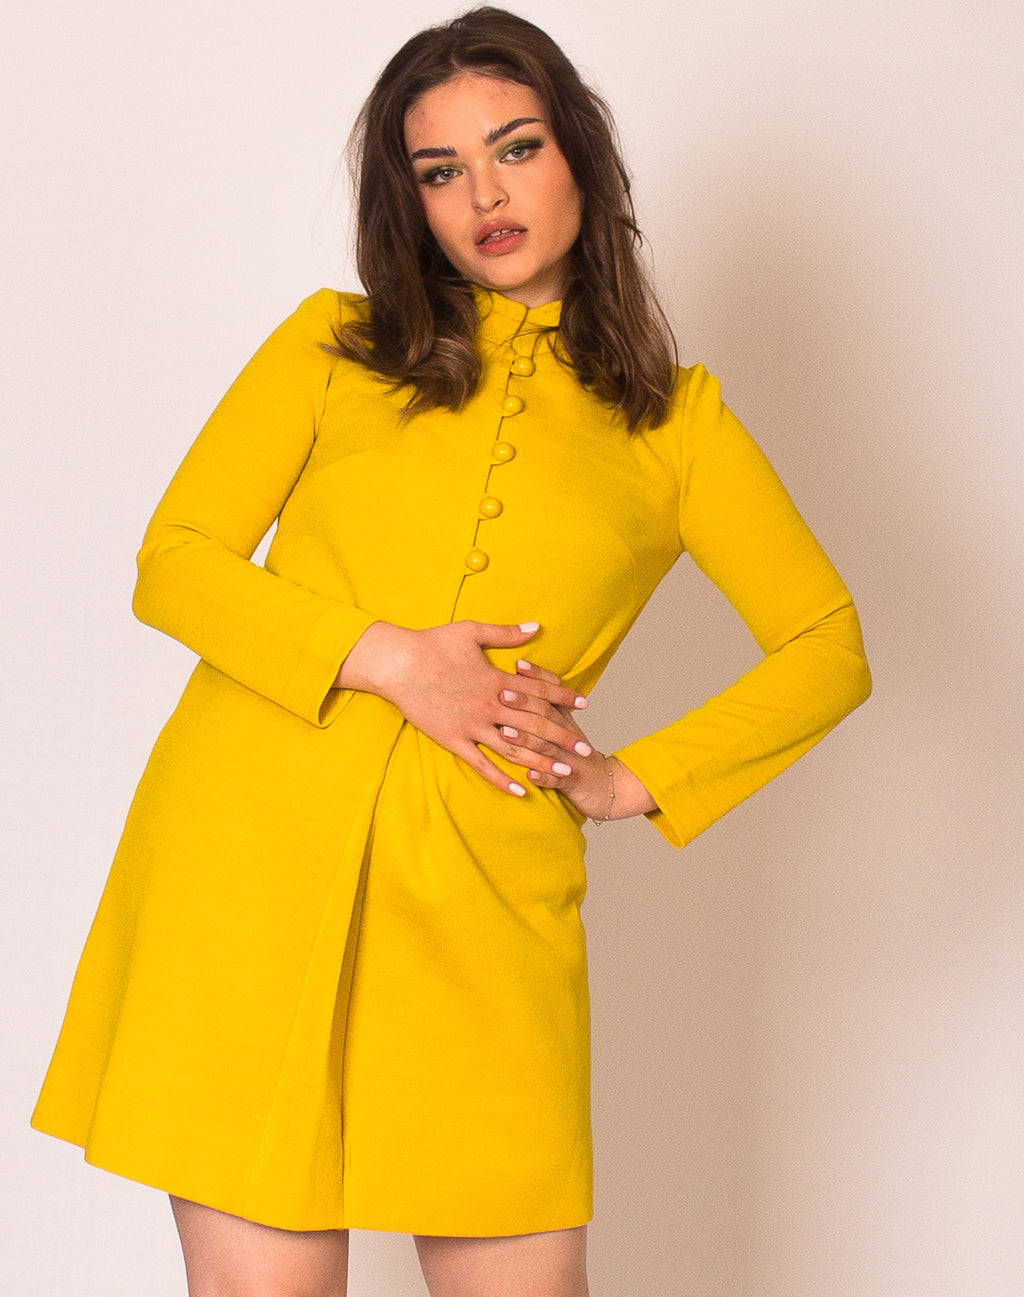 YELLOW MANDARIN COLLAR DRESS